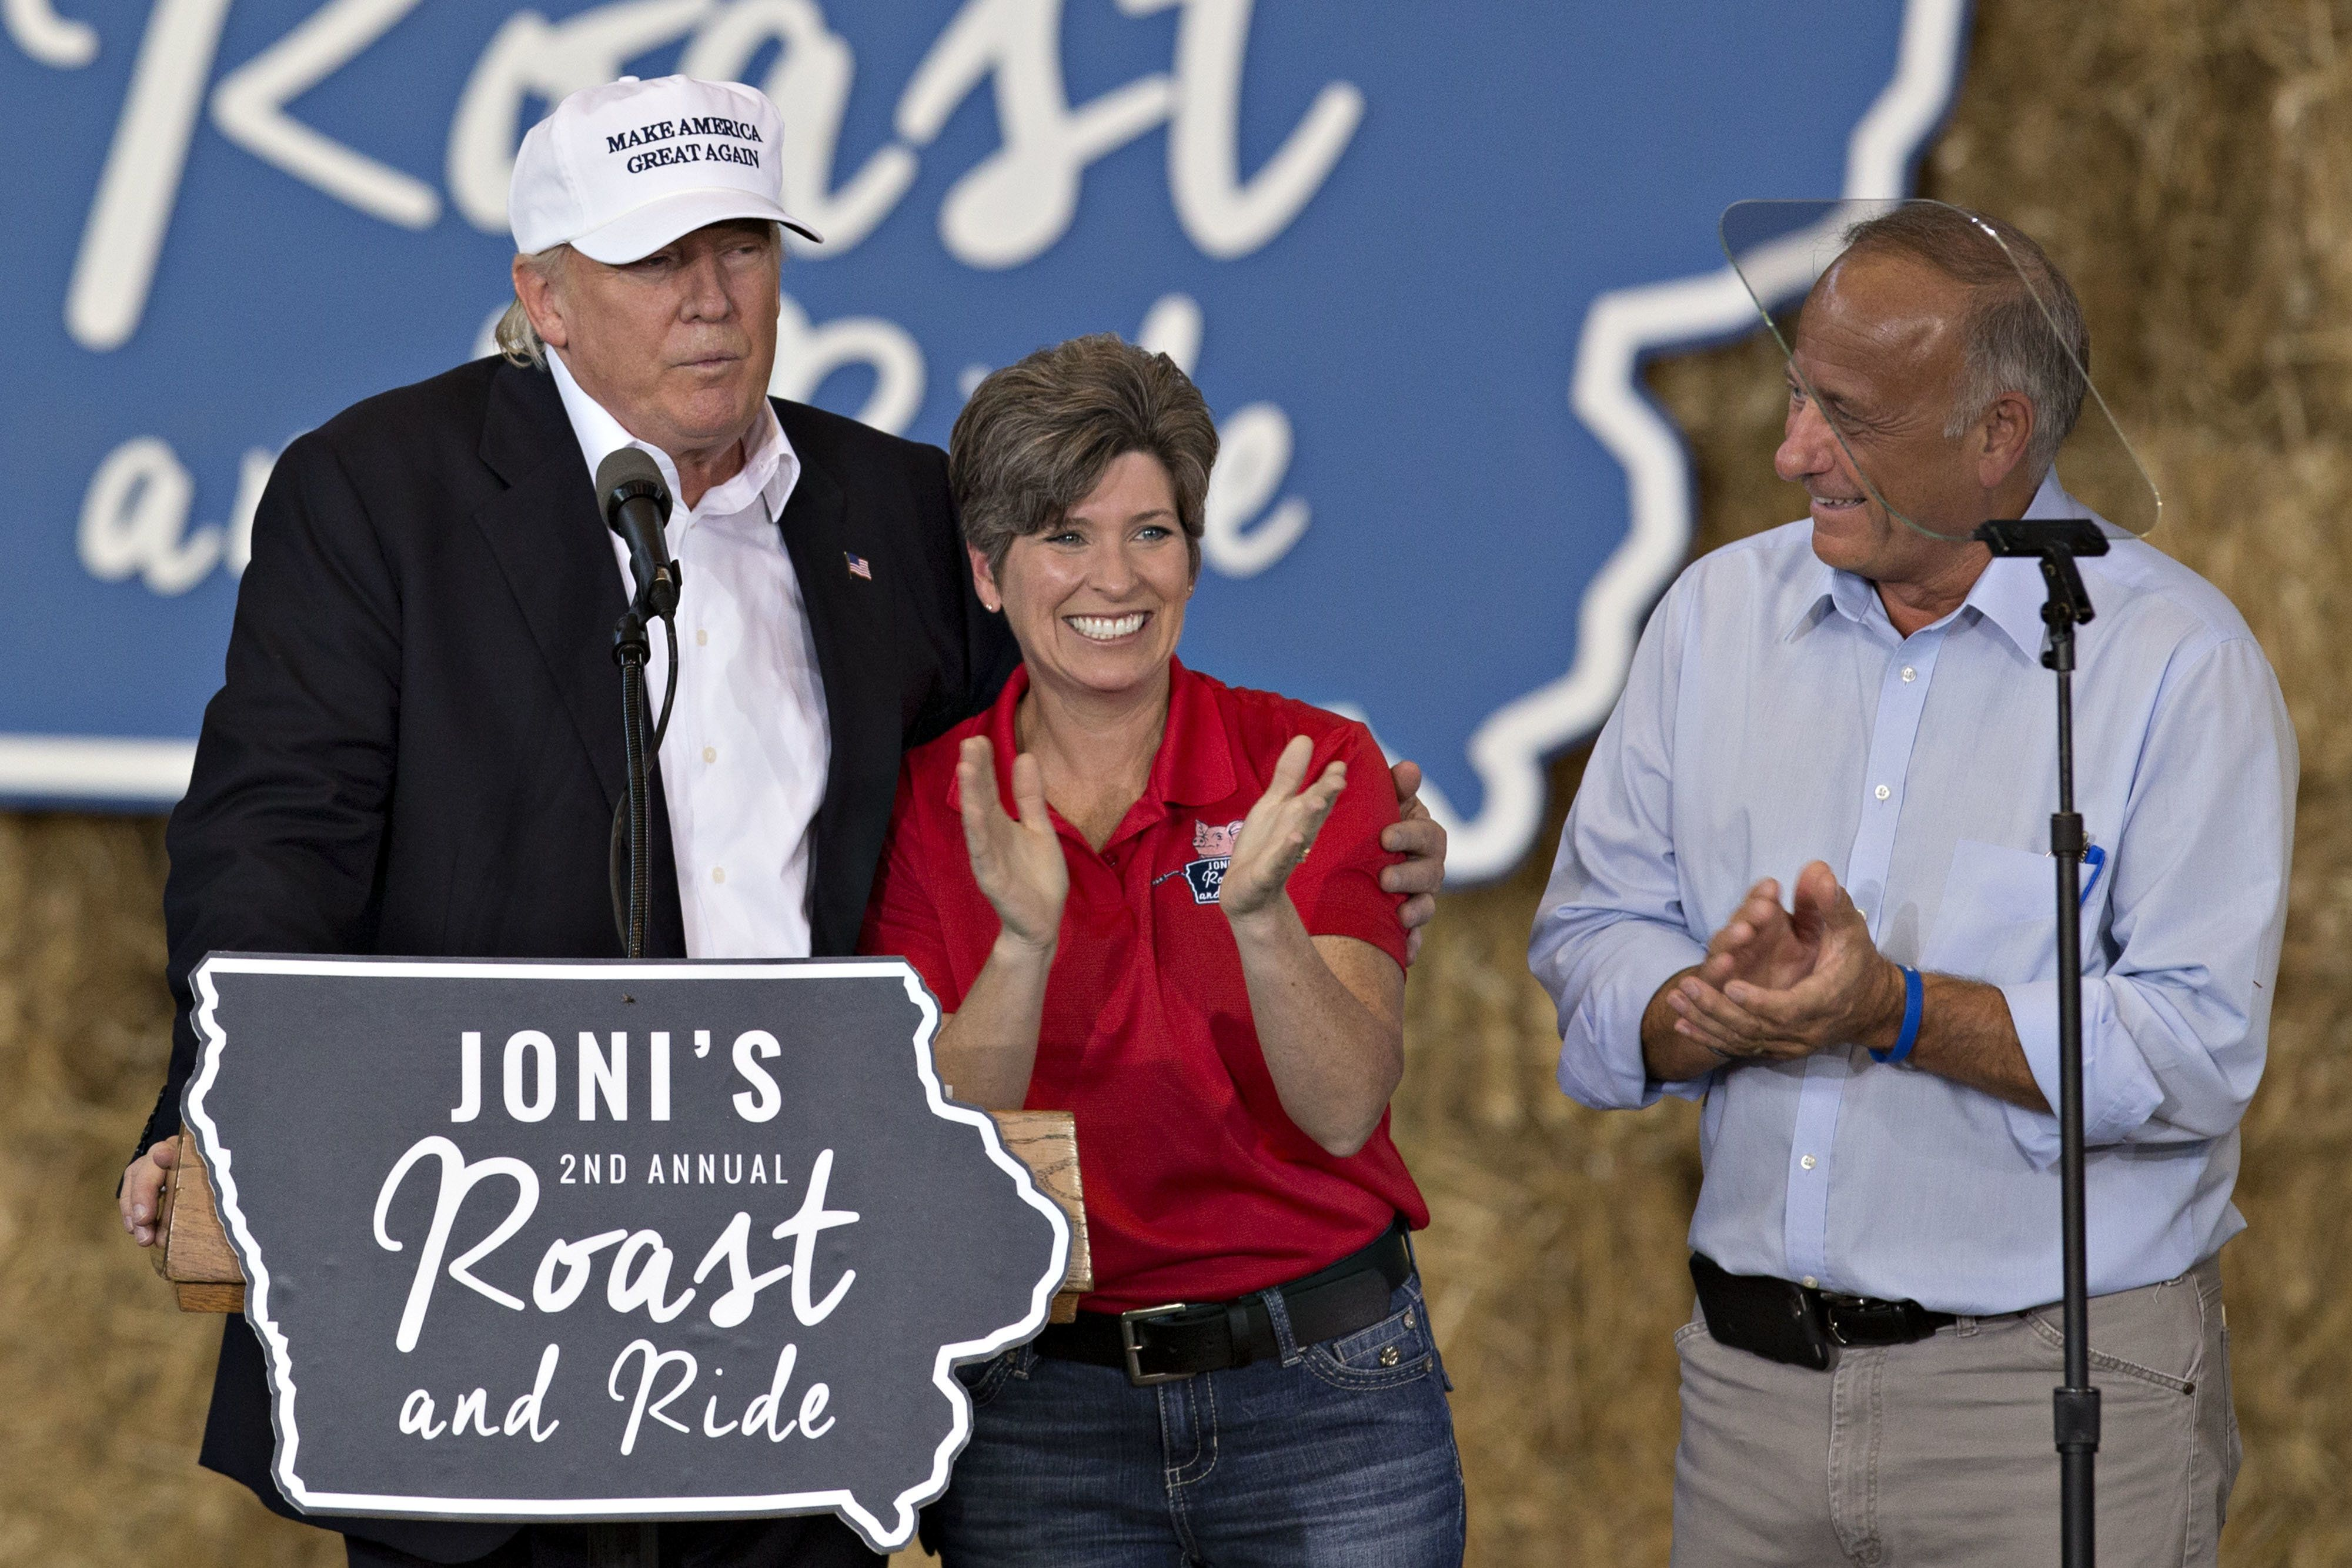 Yes, Rep. Steve King Is Racist. So Is Donald